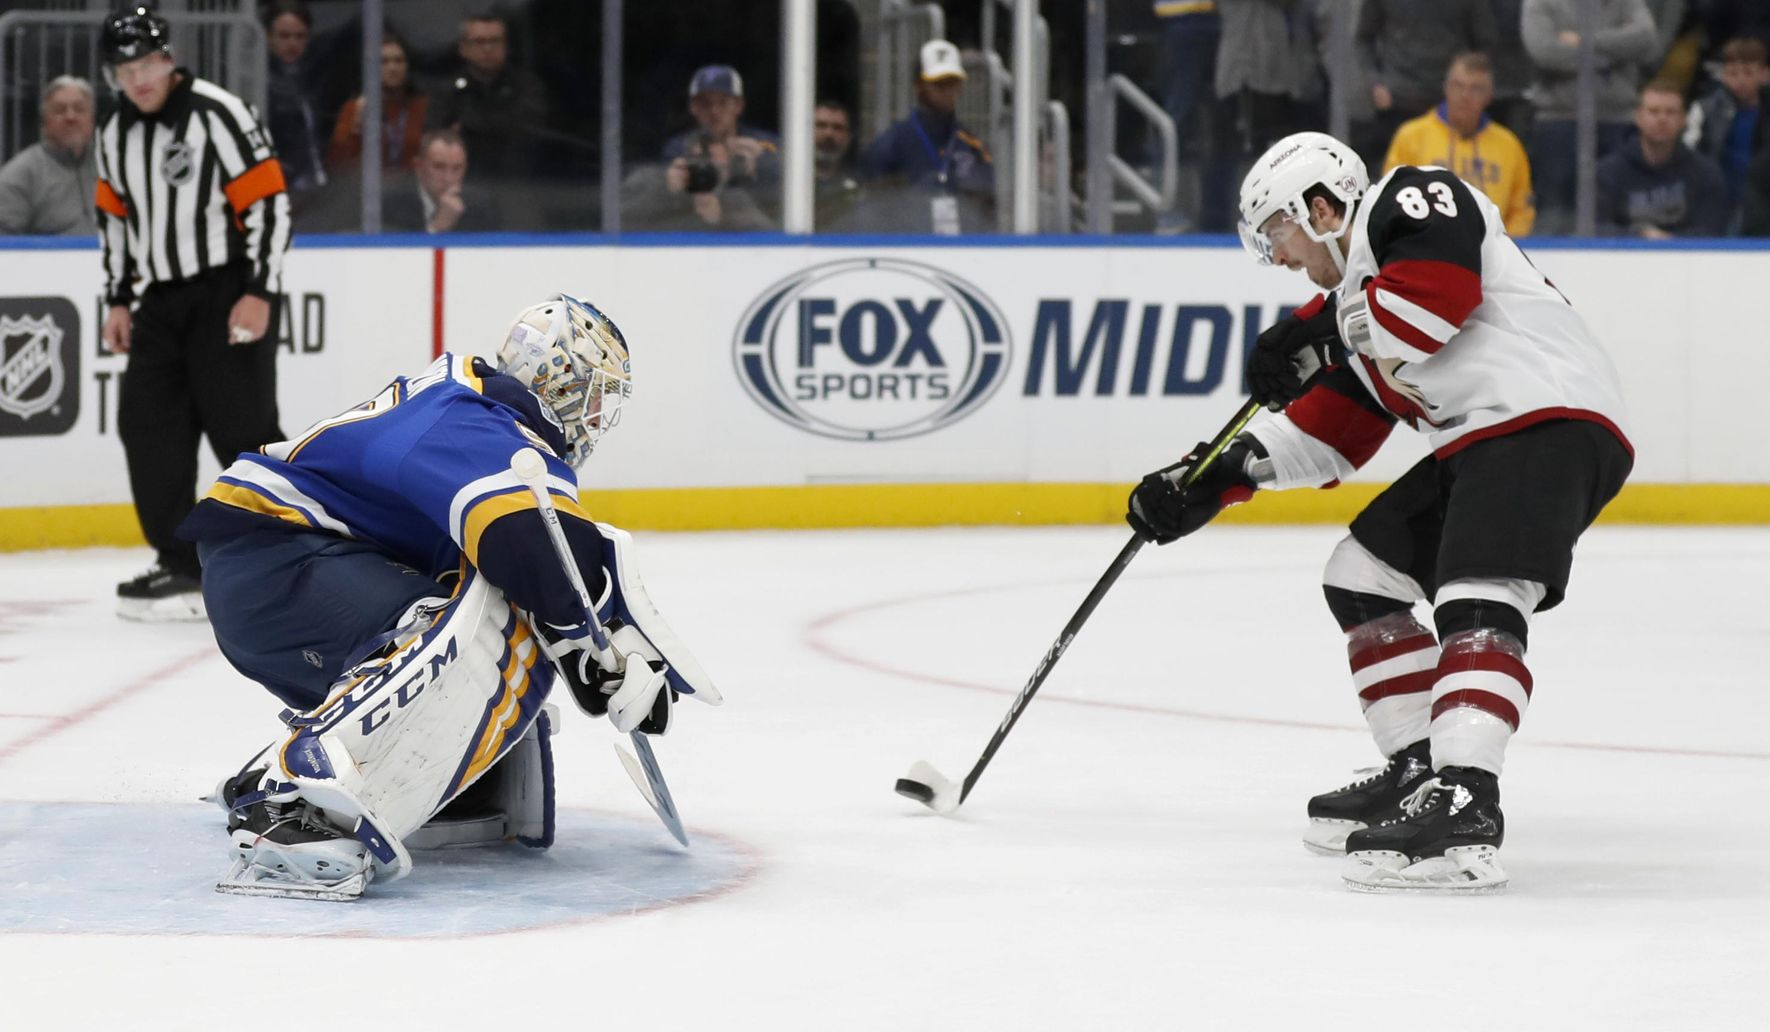 Coyotes_blues_hockey_38813_c0-124-2963-1851_s1770x1032